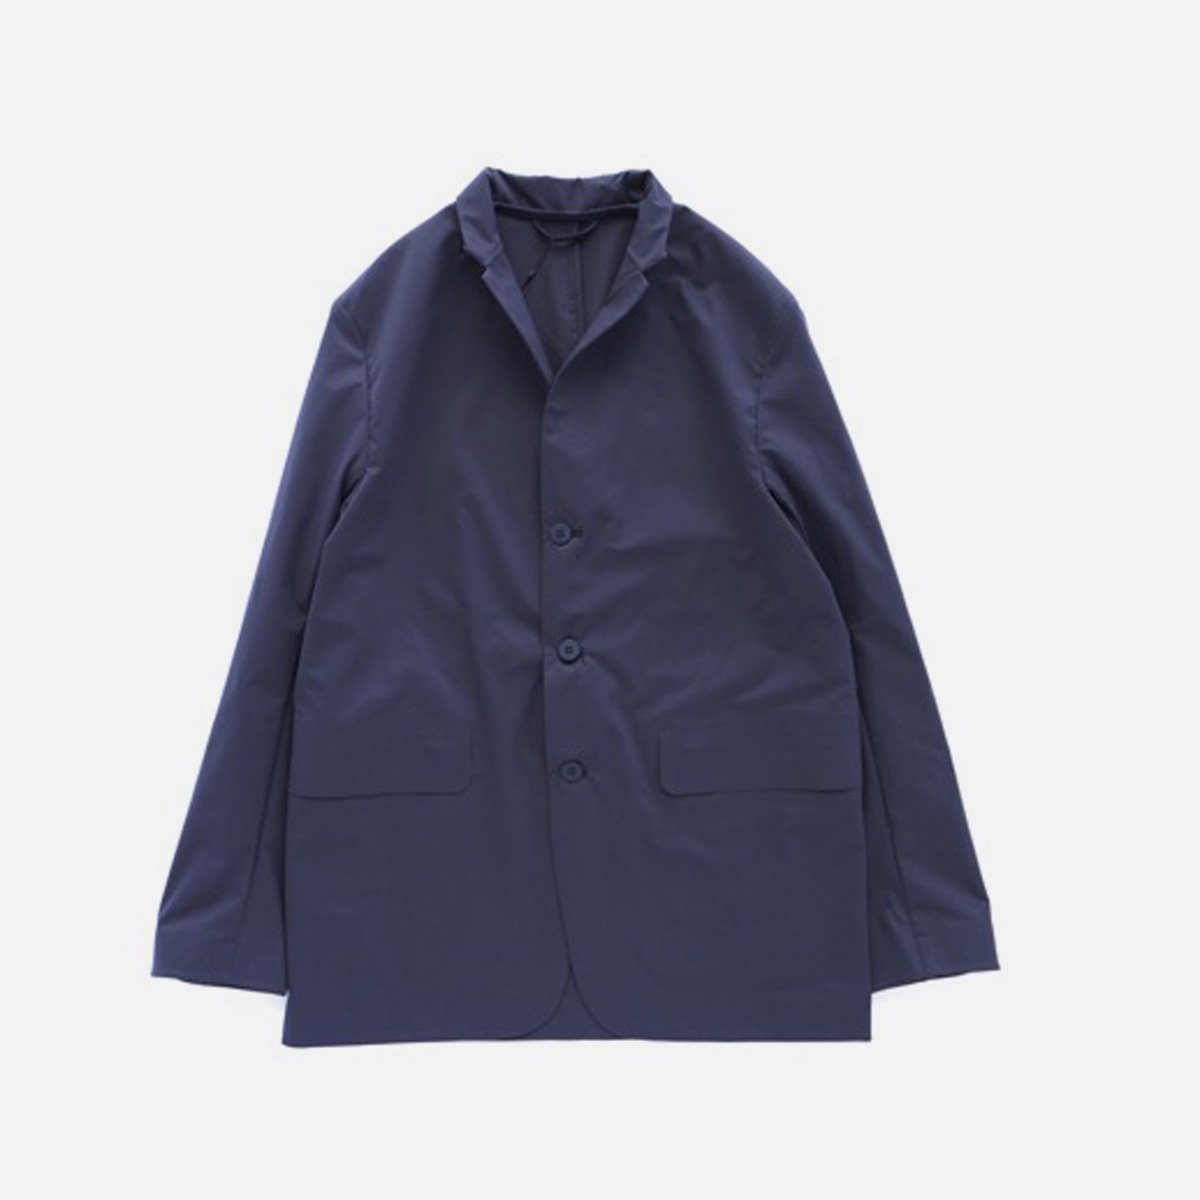 DESCENTE PAUSE PACKBLE JACKET (NAVY)